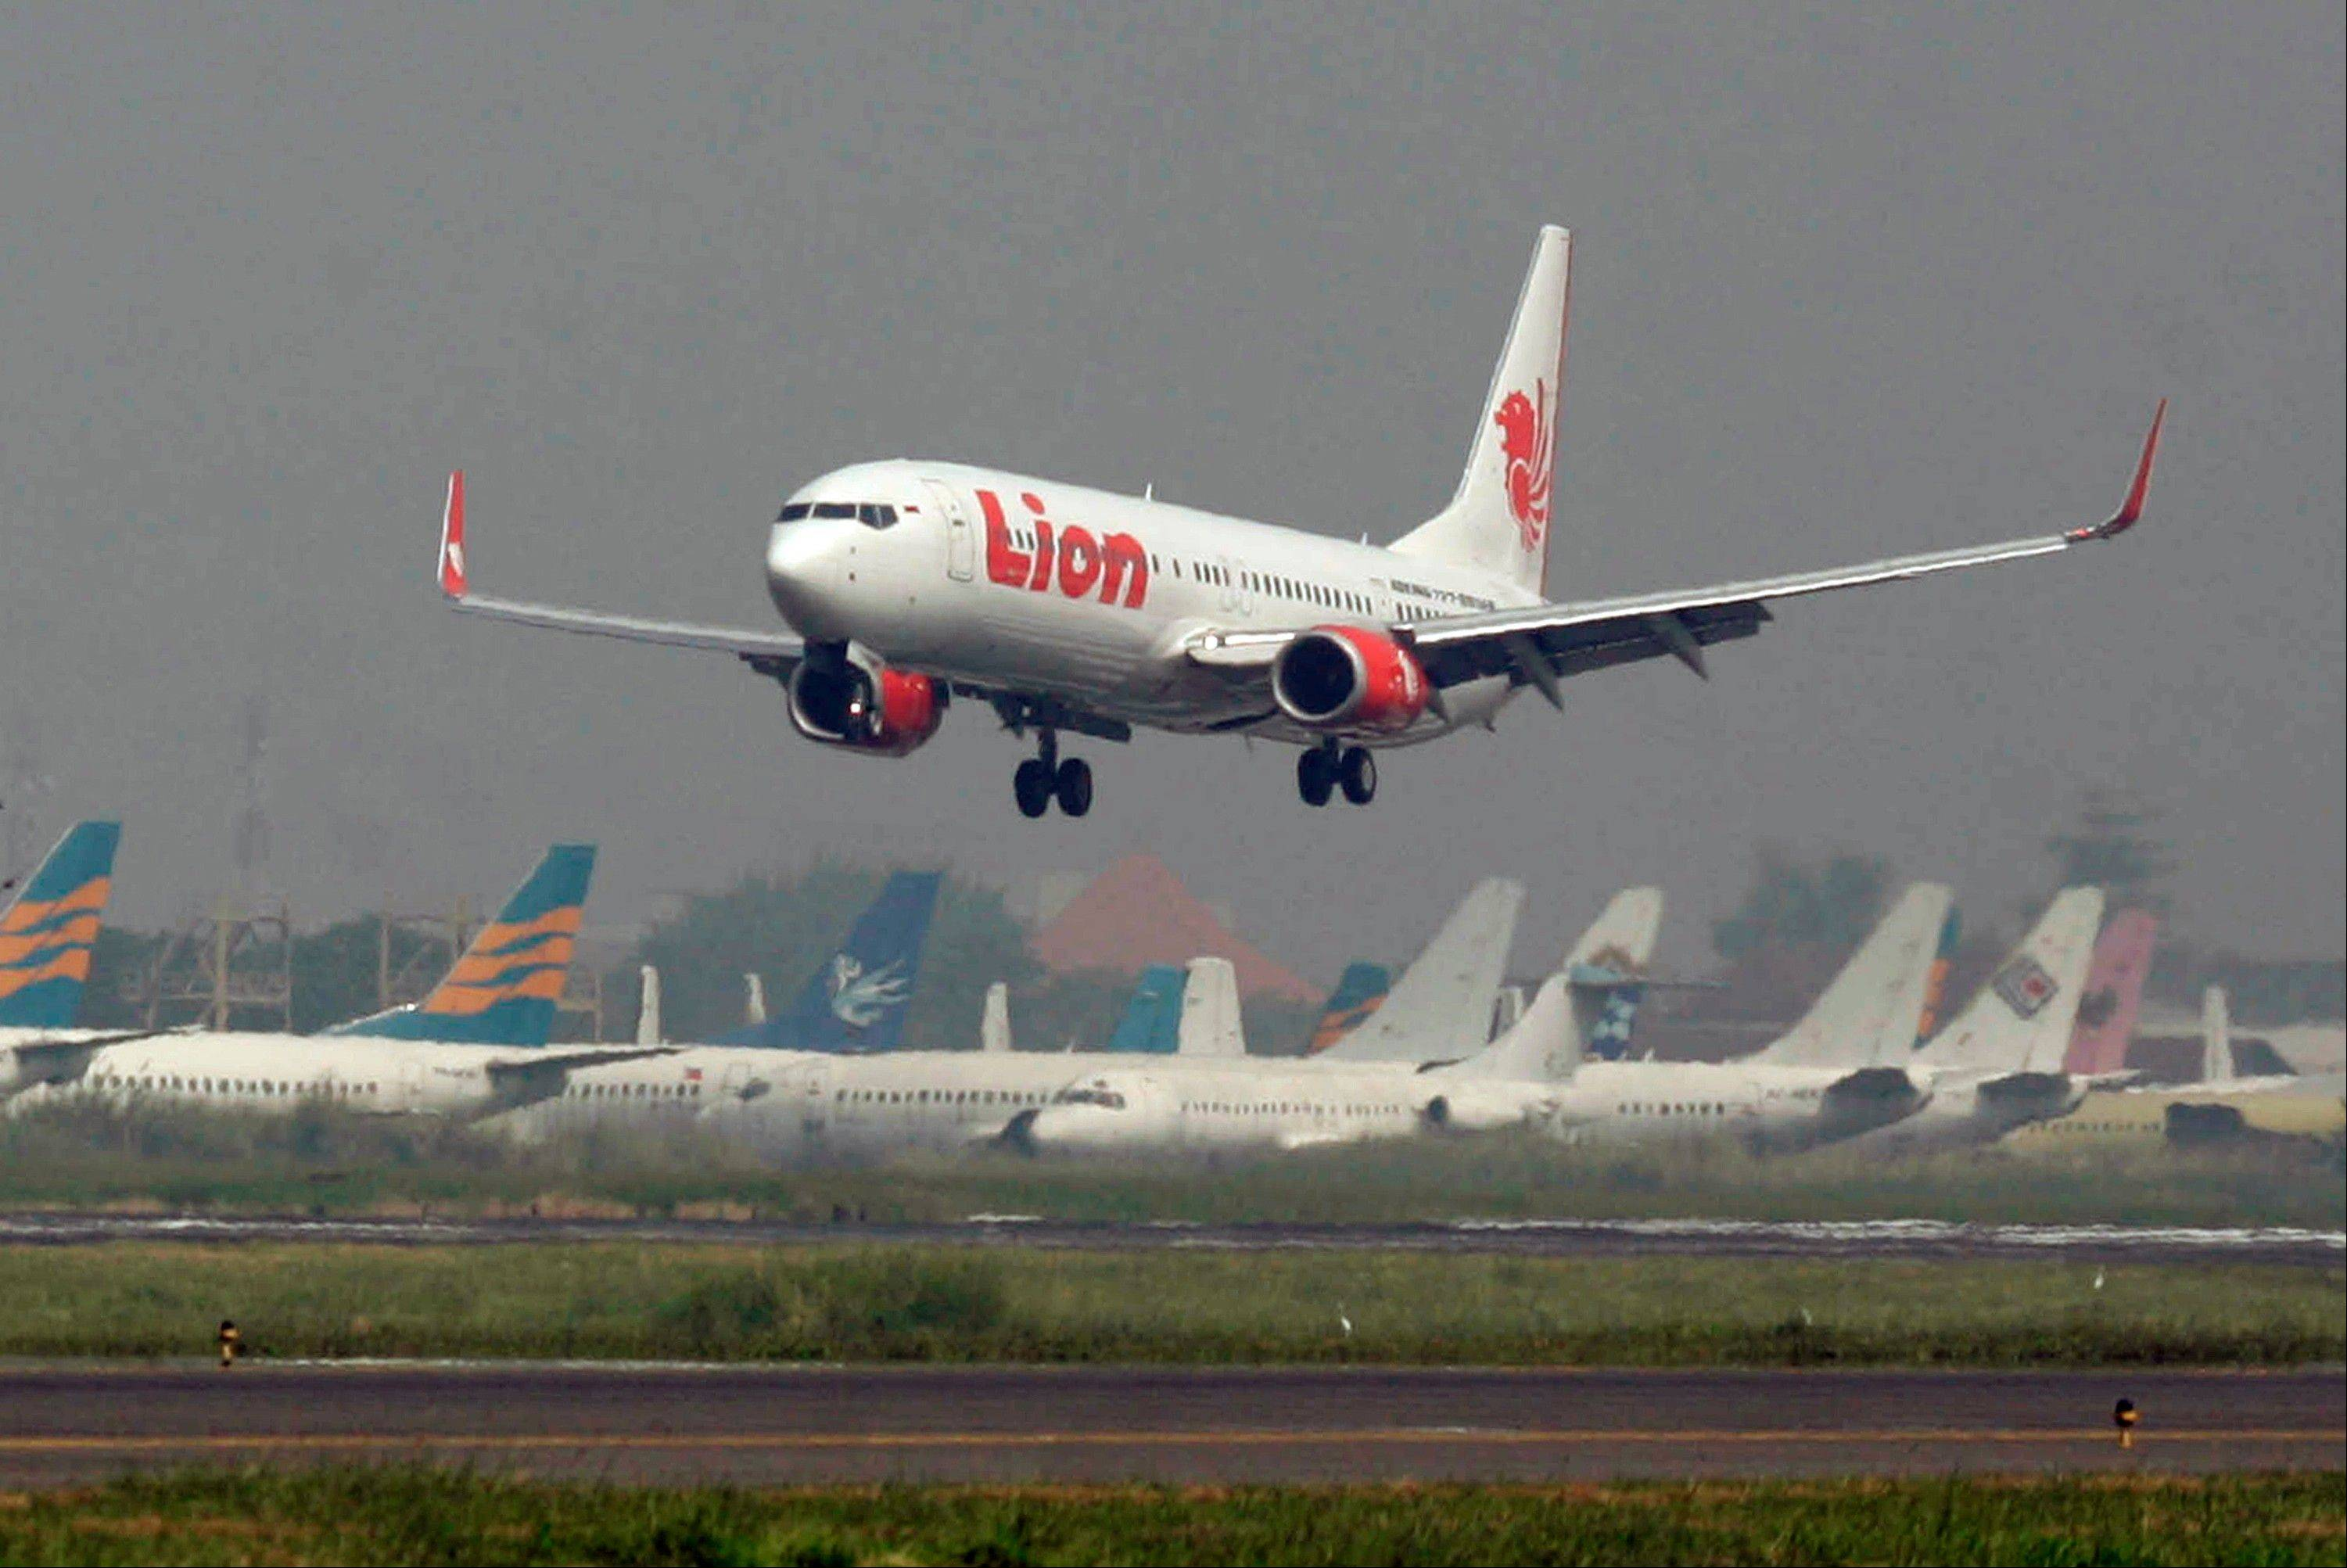 Indonesia�s top discount carrier, which catapulted into the global aviation spotlight with record deals to buy Airbus and Boeing planes, is taking the battle for Asia�s budget-minded travelers to the backyard of the airline that helped pioneer low cost flights in the region.